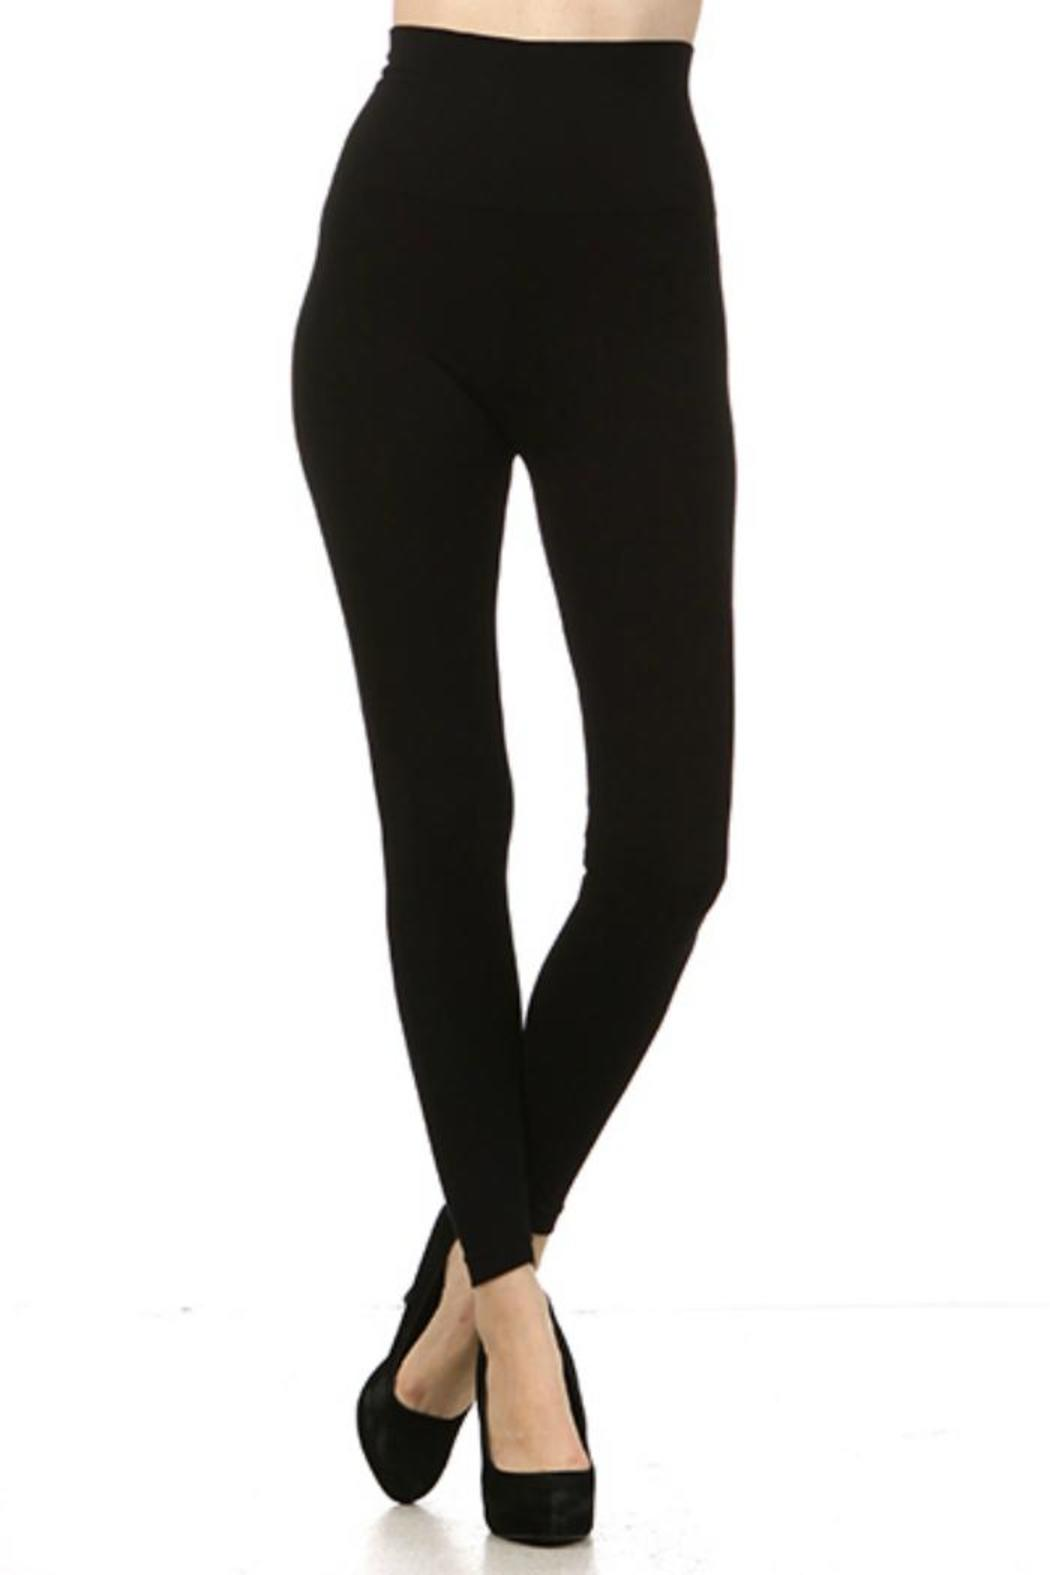 M. Rena High Waist Leggings from Atlanta by Collage Boutique